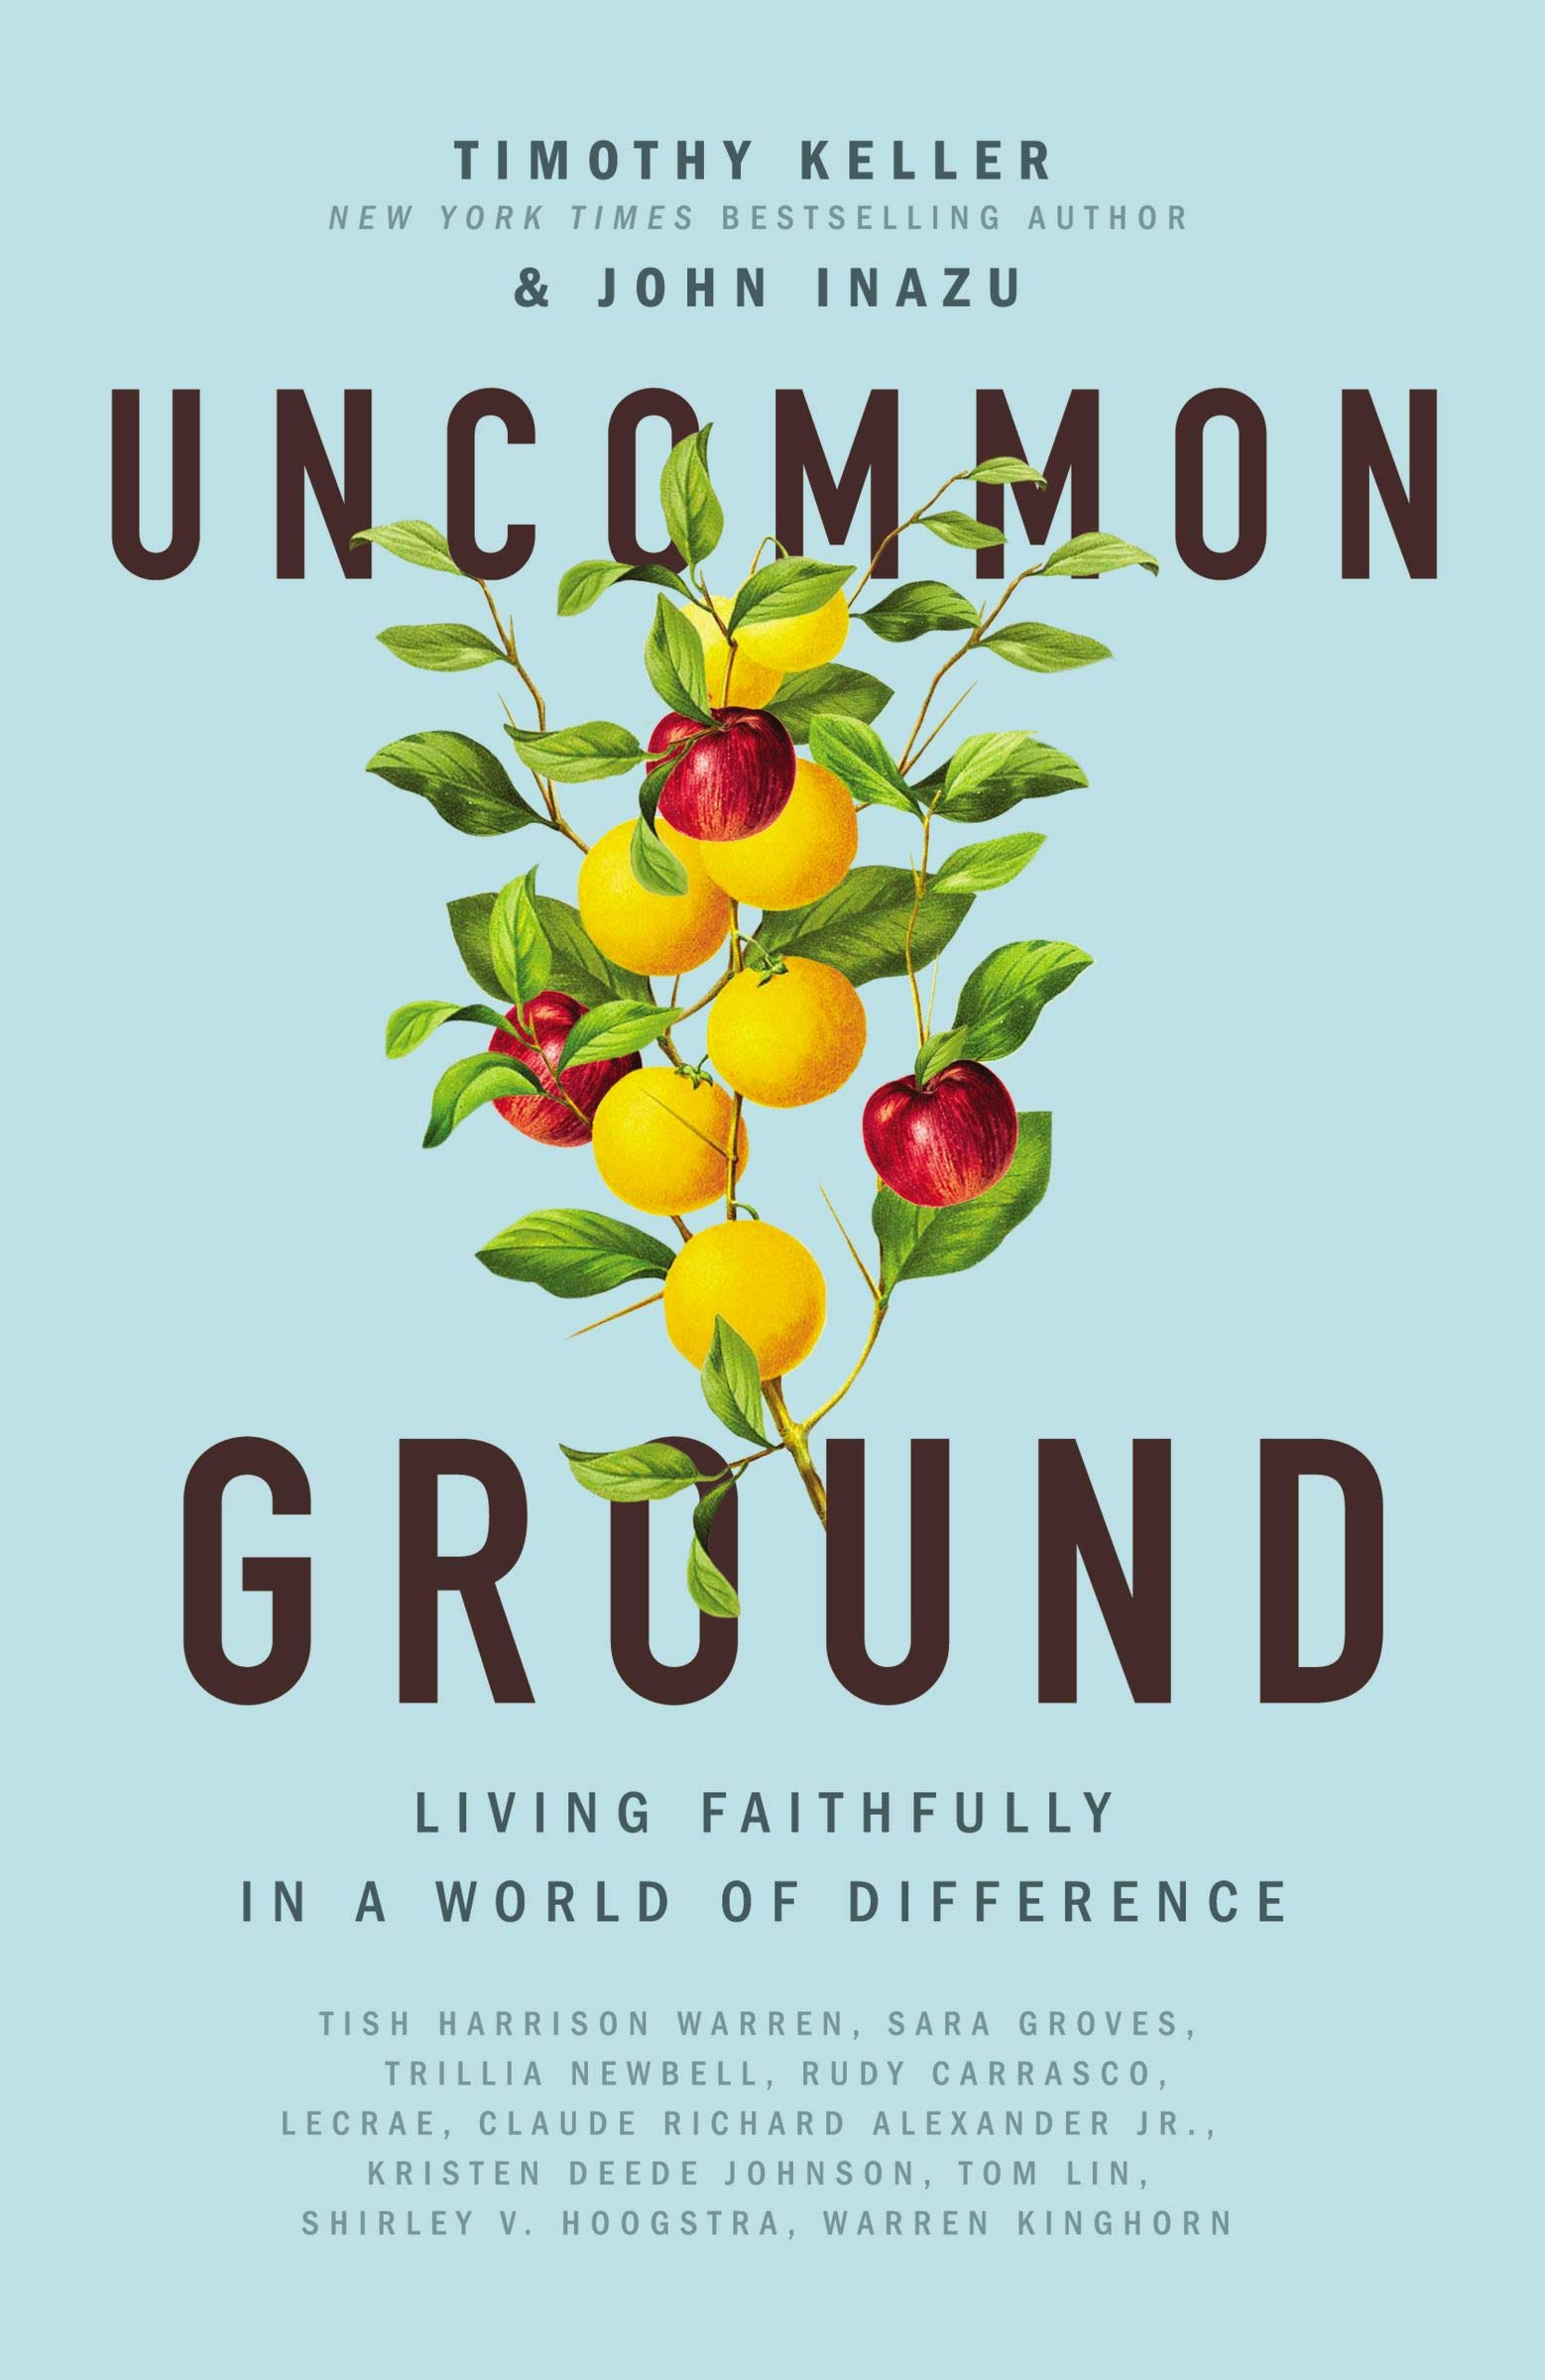 Uncommon Ground: Living Faithfully in a World of Difference by Tim Keller and John Inazu